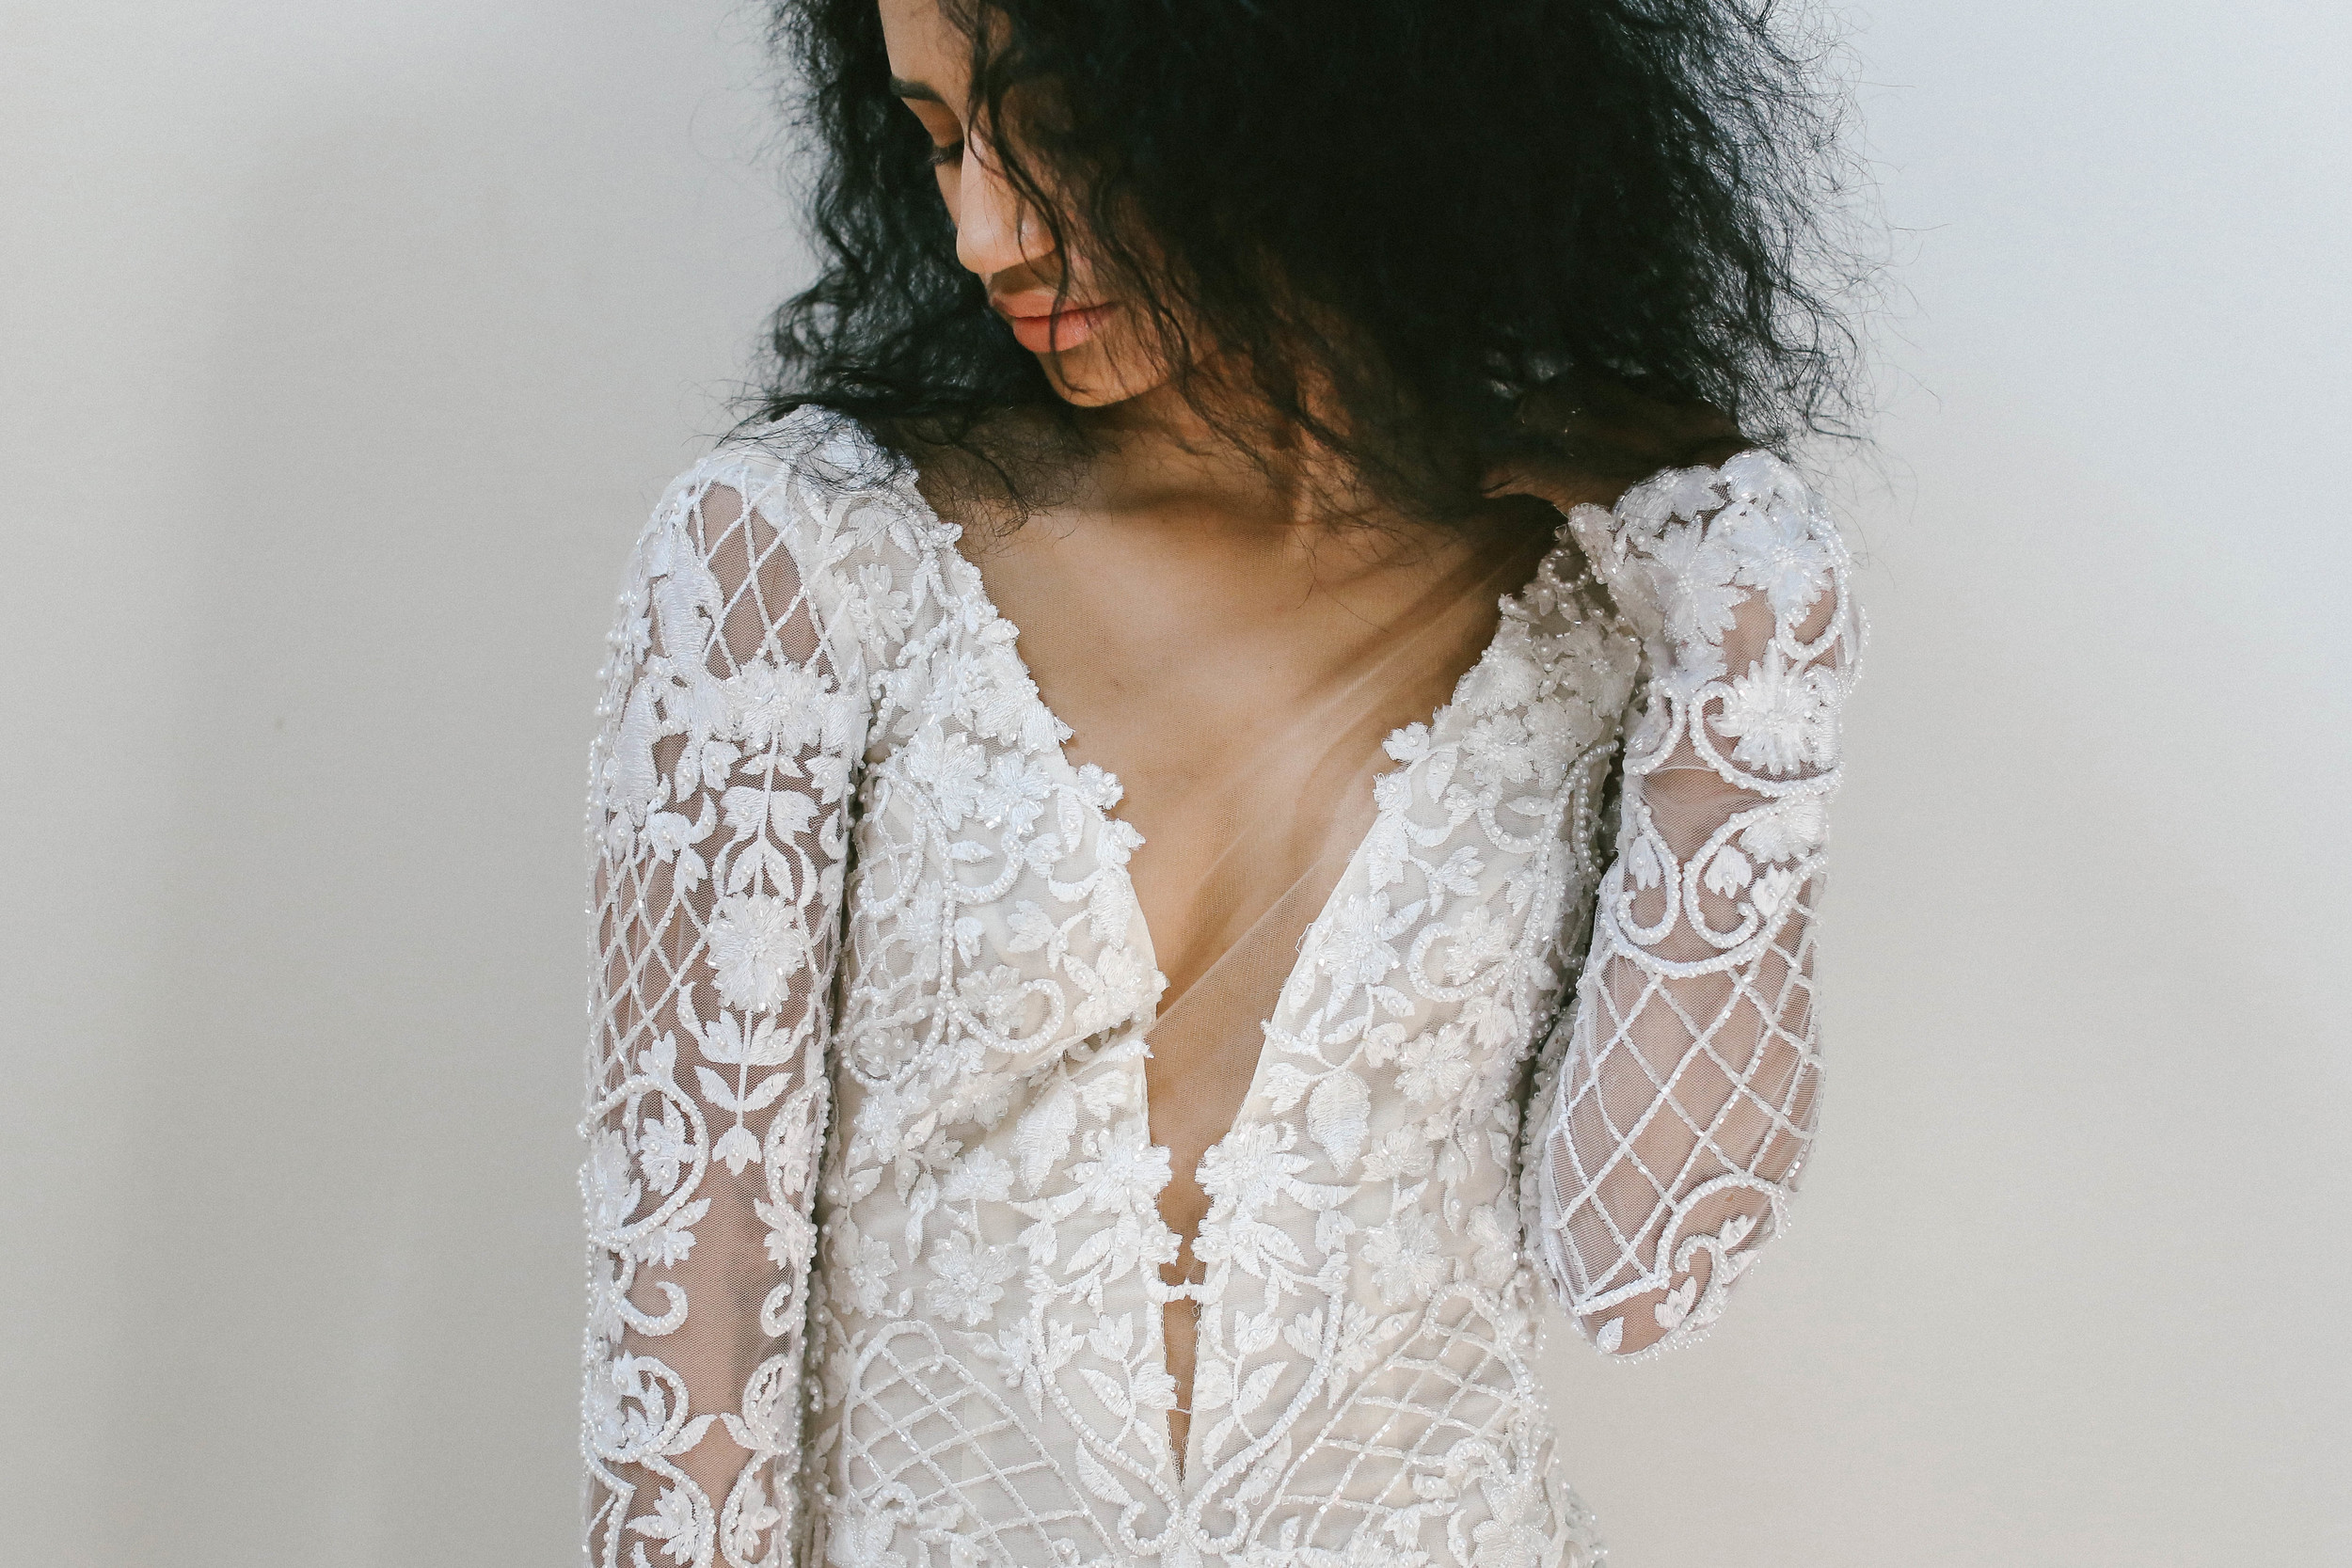 finery-boutique-huntsivlle-alabama-bohemian-wedding-shop-odylyne-the-ceremony-yolan-cris-bride-bridal-yaki-ravid-berta-calla-blanche-lookbook-cool-nashville-tenessee-plunge